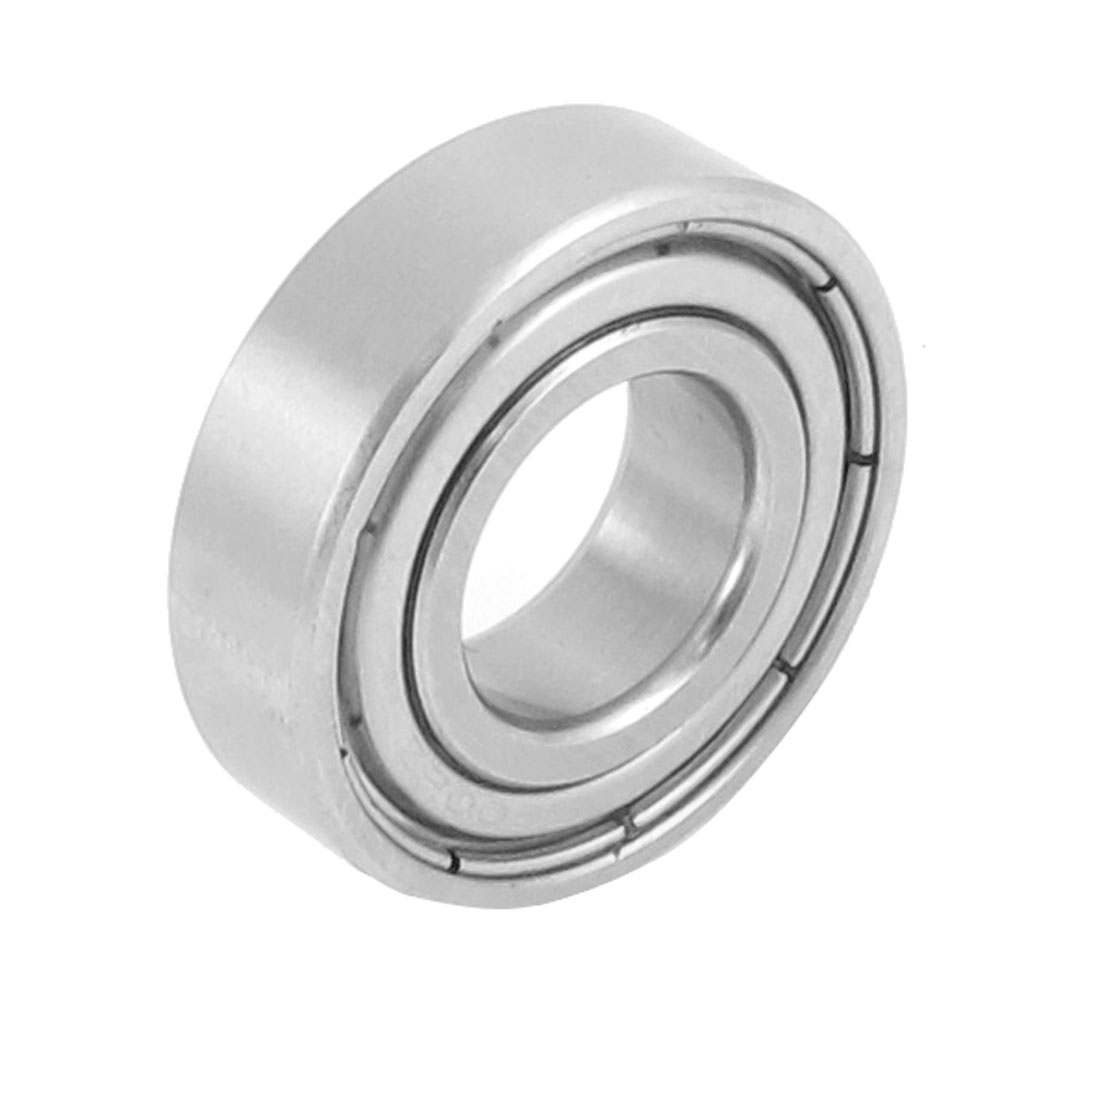 Stainless Steel 32mm x 15mm x 9mm Sealed Deep Groove Ball Bearing